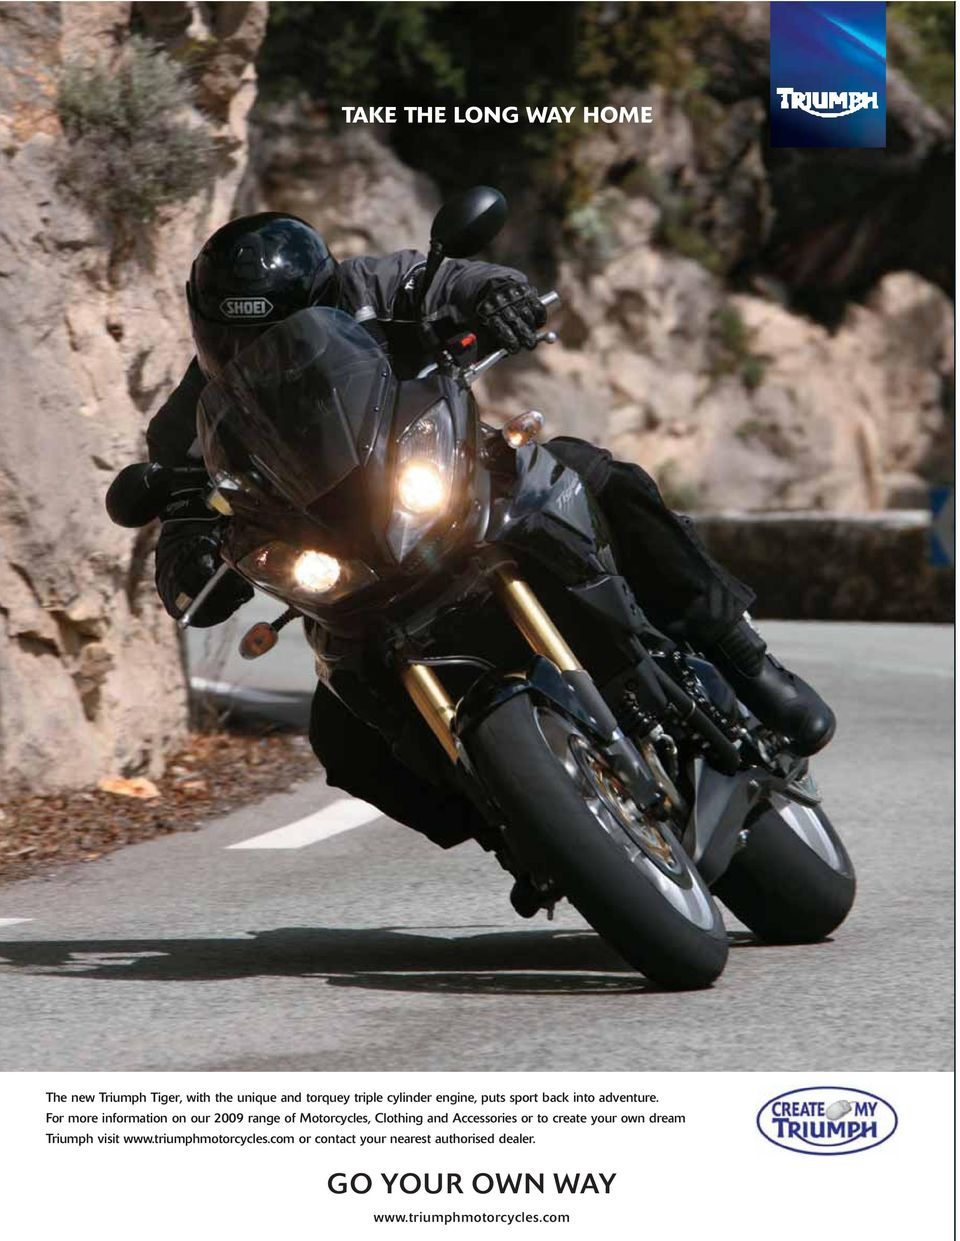 For more information on our 2009 range of Motorcycles, Clothing and Accessories or to